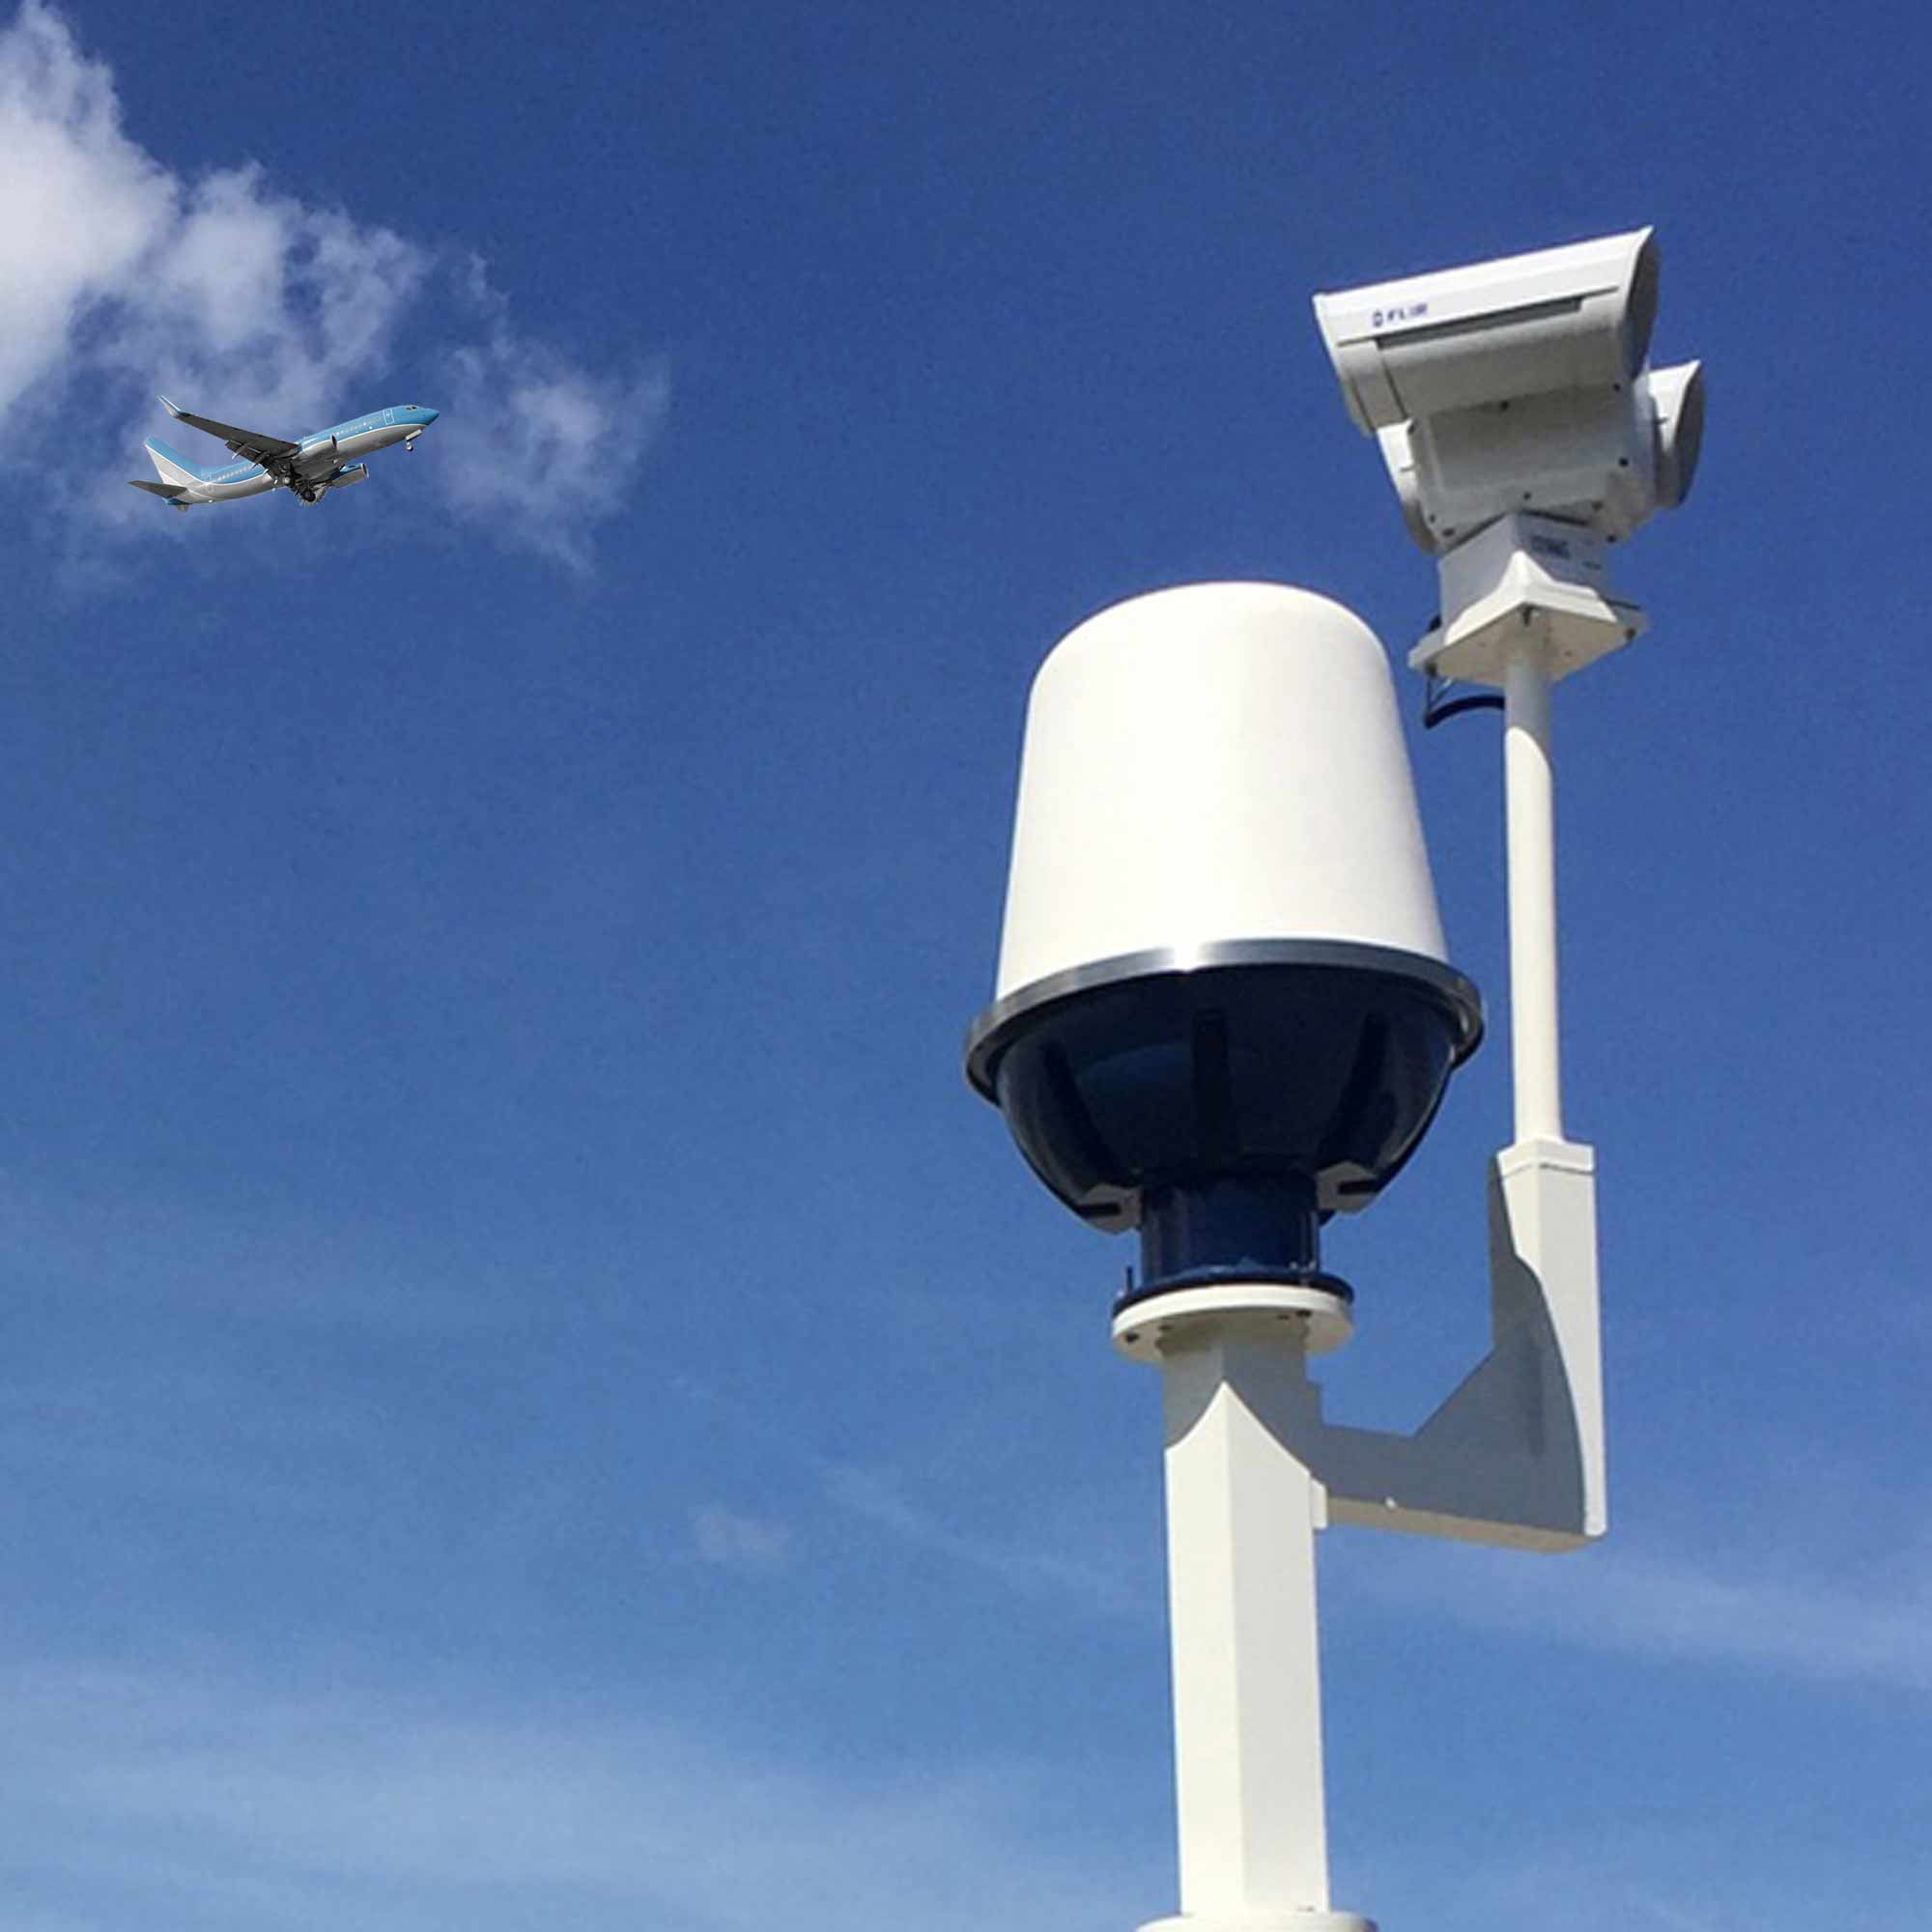 Global Radar System Market to witness promising growth opportunities during– 2020-2026 |growth factors, regional trends, key players analysis